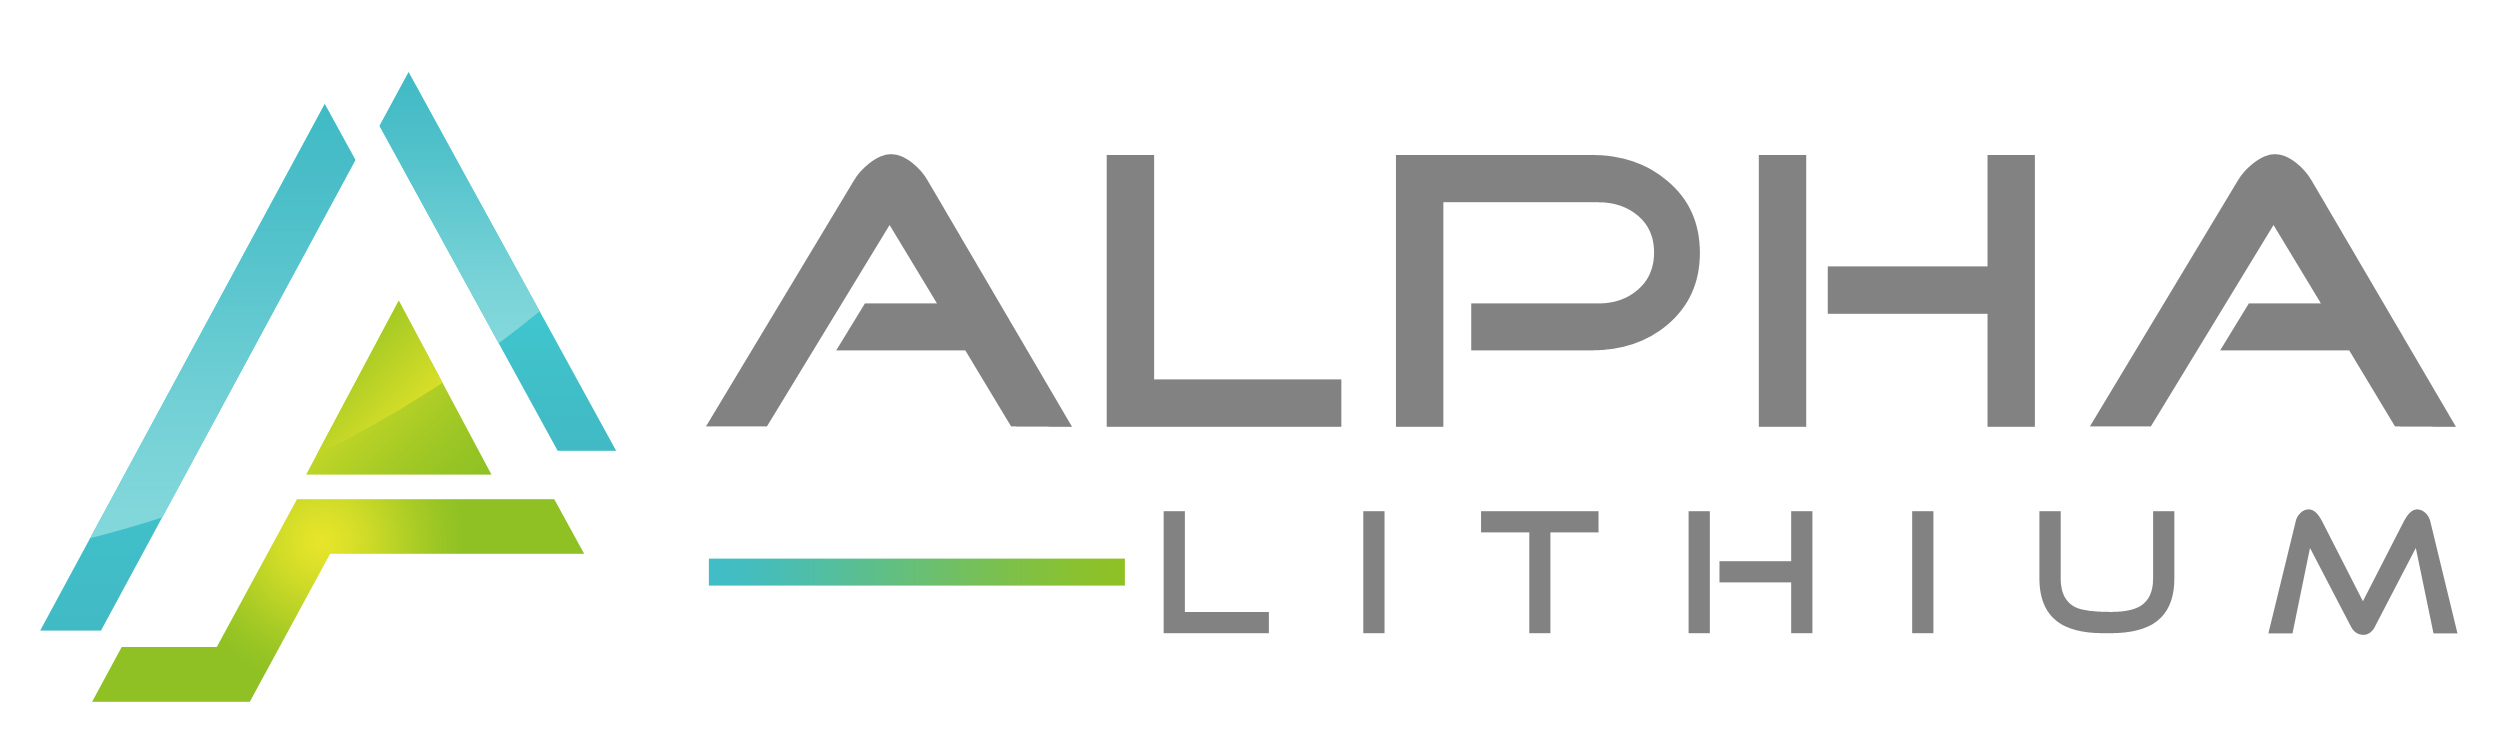 Alpha Lithium Completes Geophysics and Updates Fieldwork at Tolillar Lithium Project in Argentina